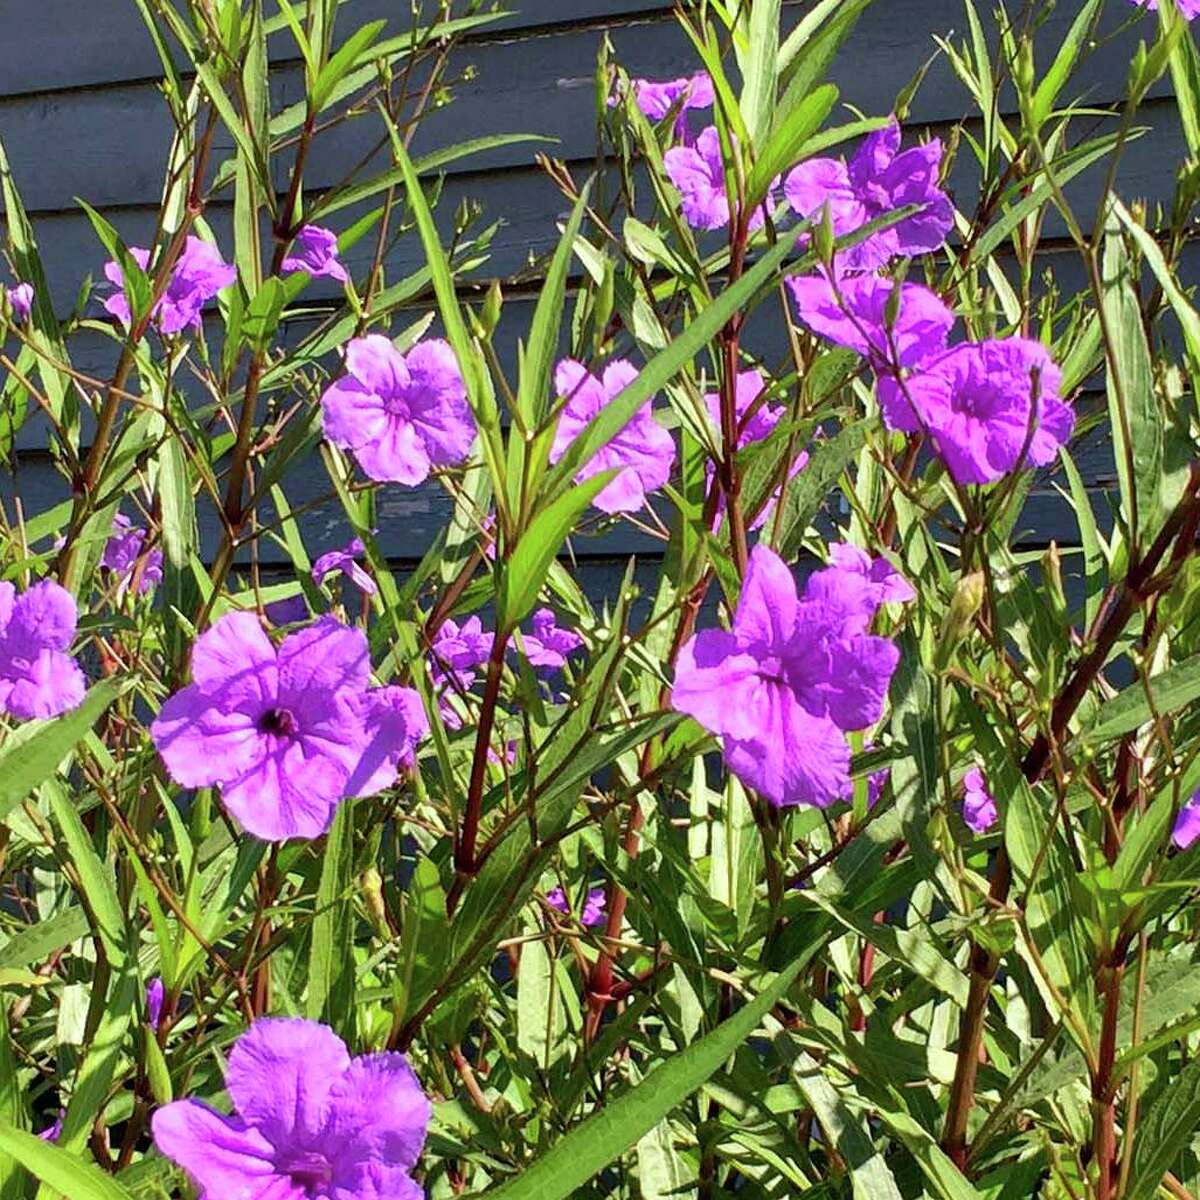 This is Mexican petunia, Ruellia brittoniana. It's invasive nature, but when contained, it's a handsome perennial.